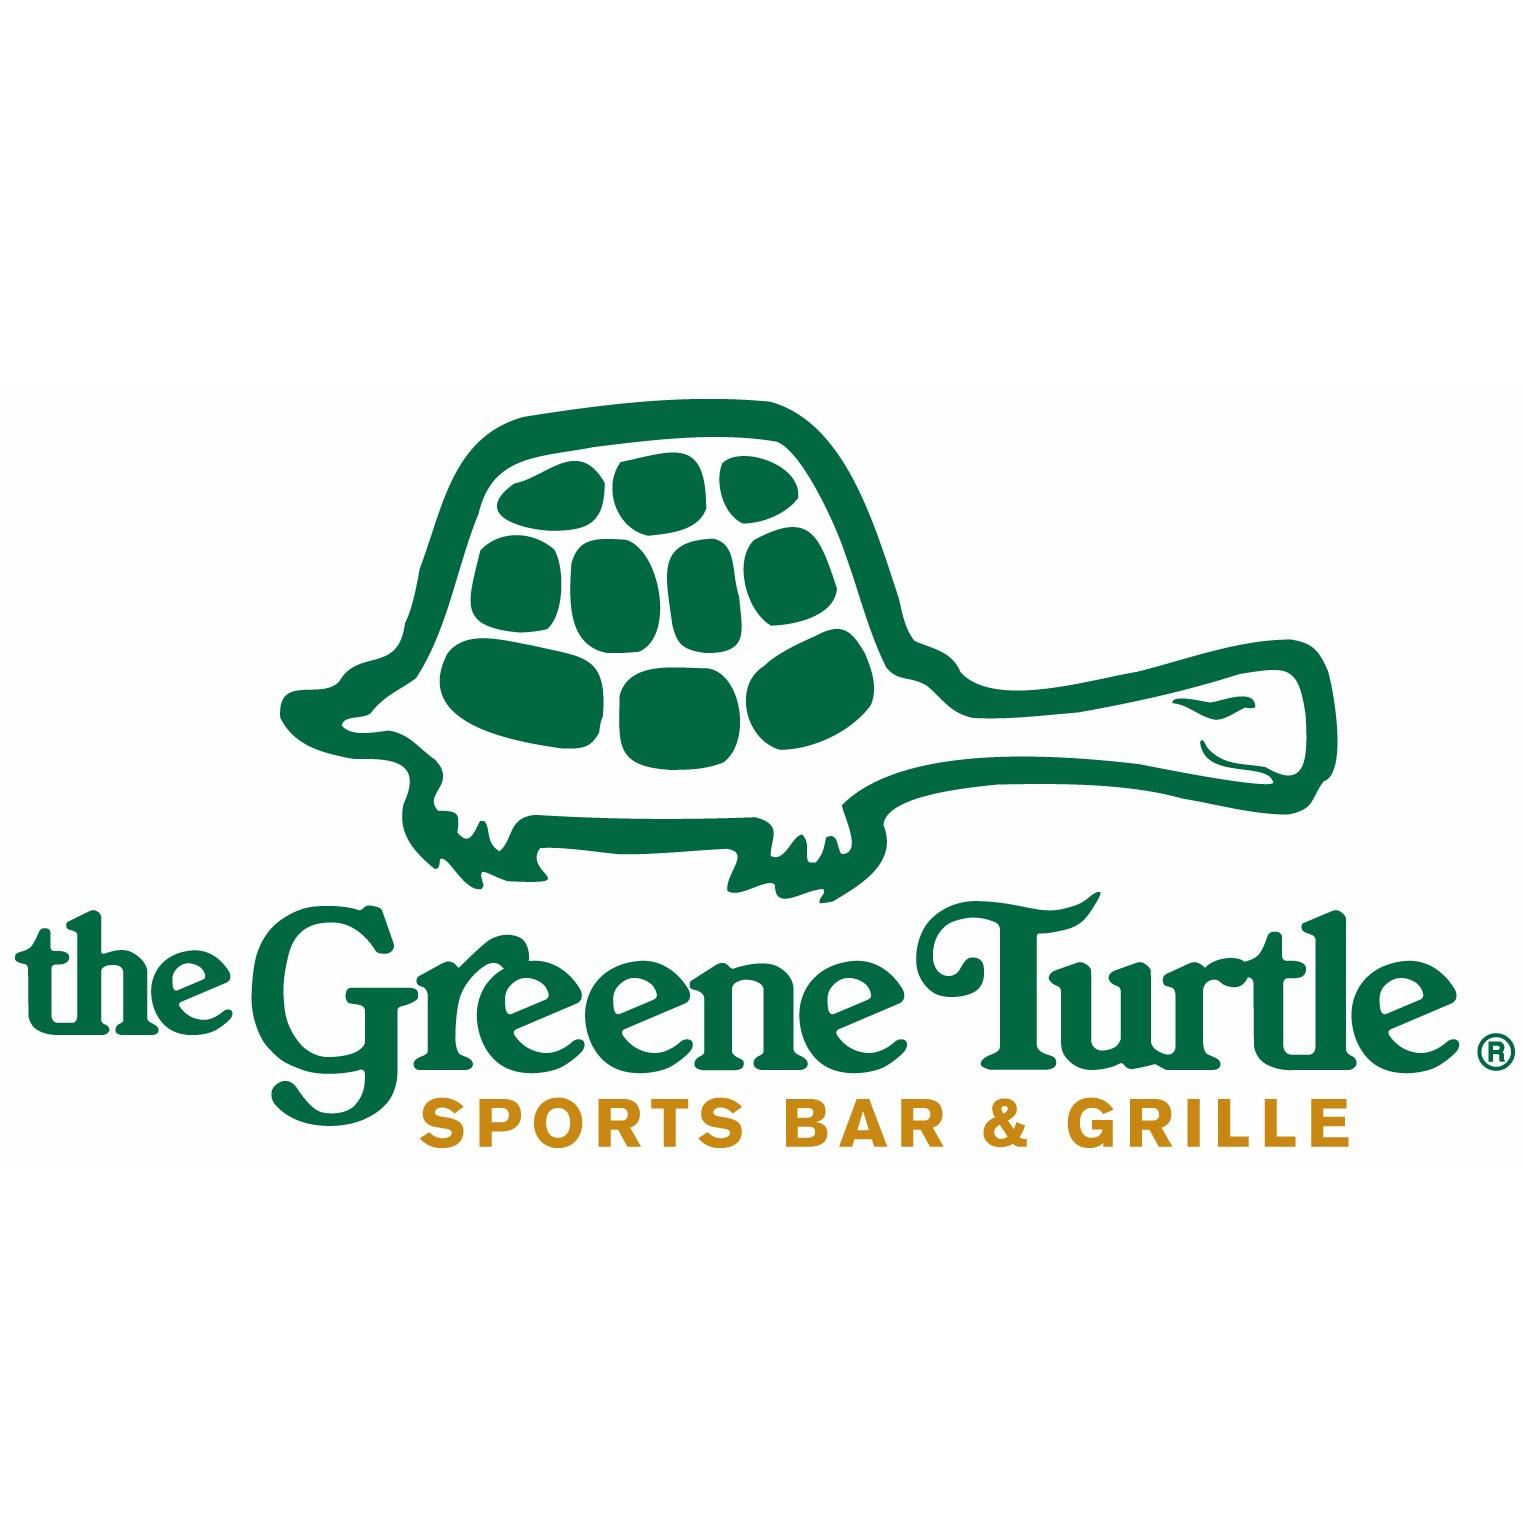 Bein Tv Grille North Wales Pa Craft Beer Sports Bar And Grille The Greene Turtle